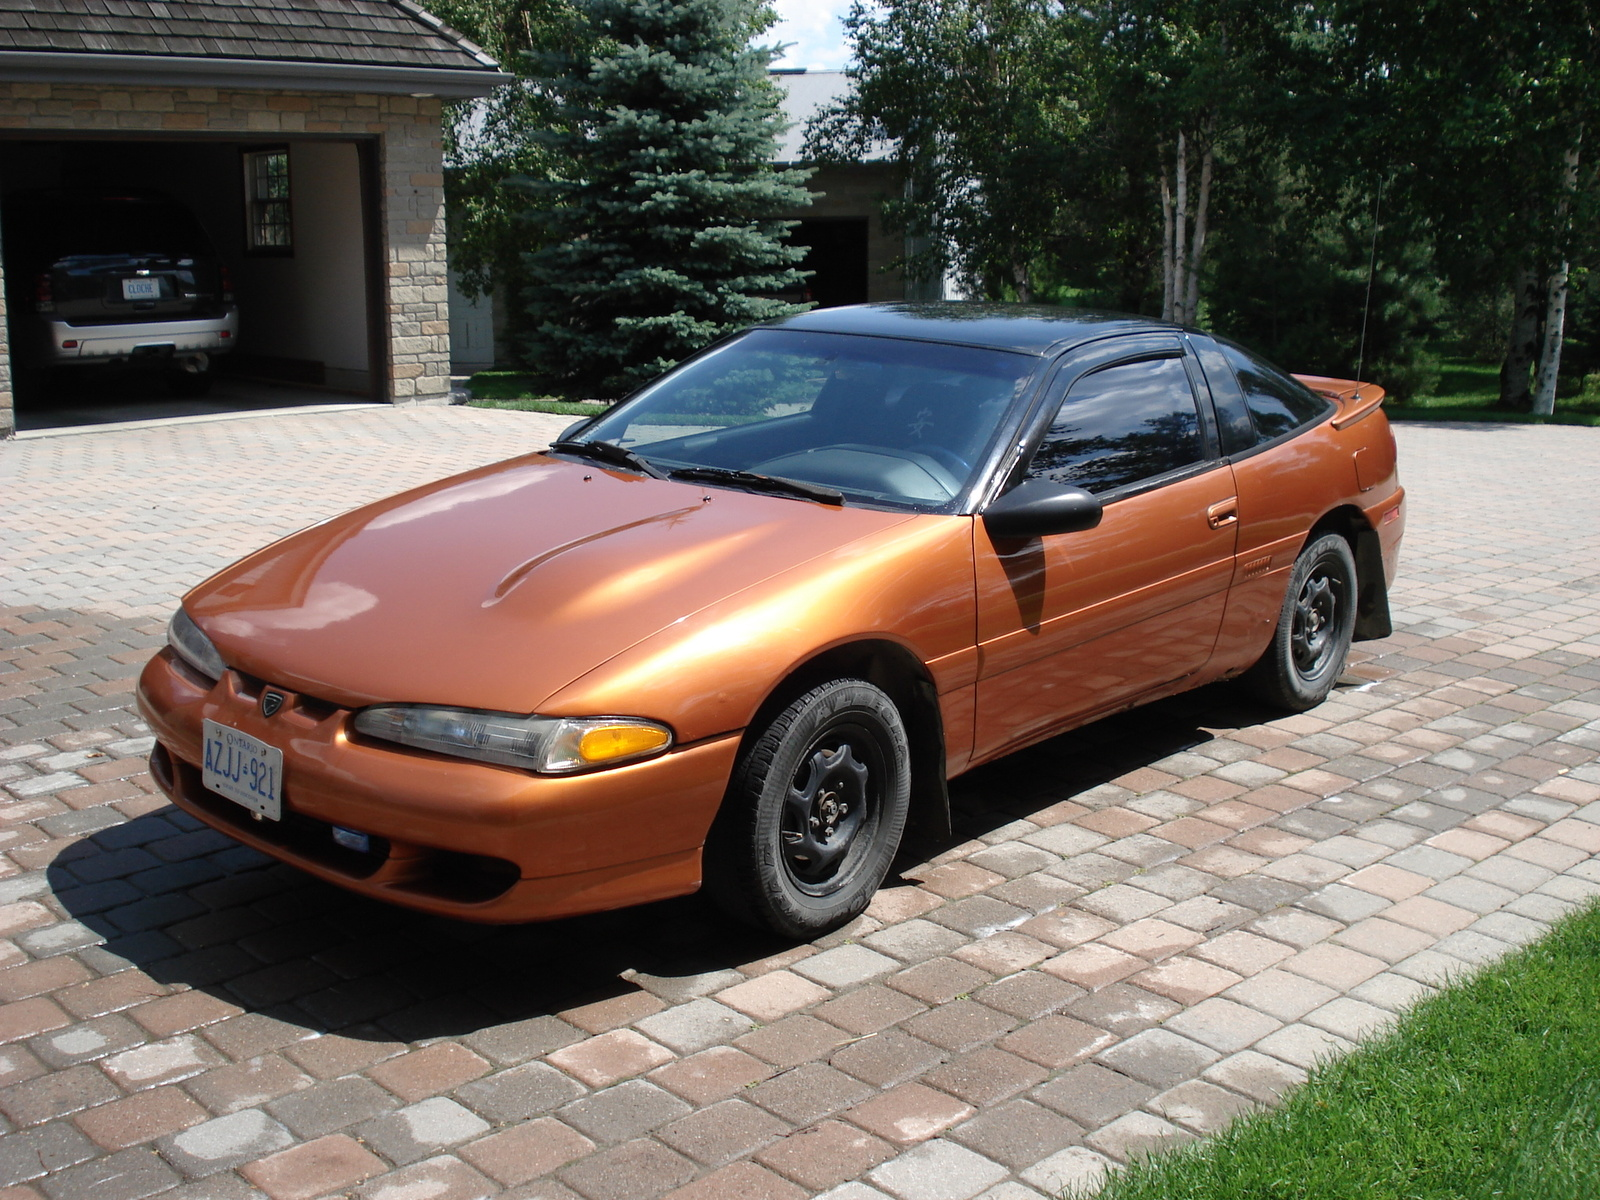 Eagle Talon #3